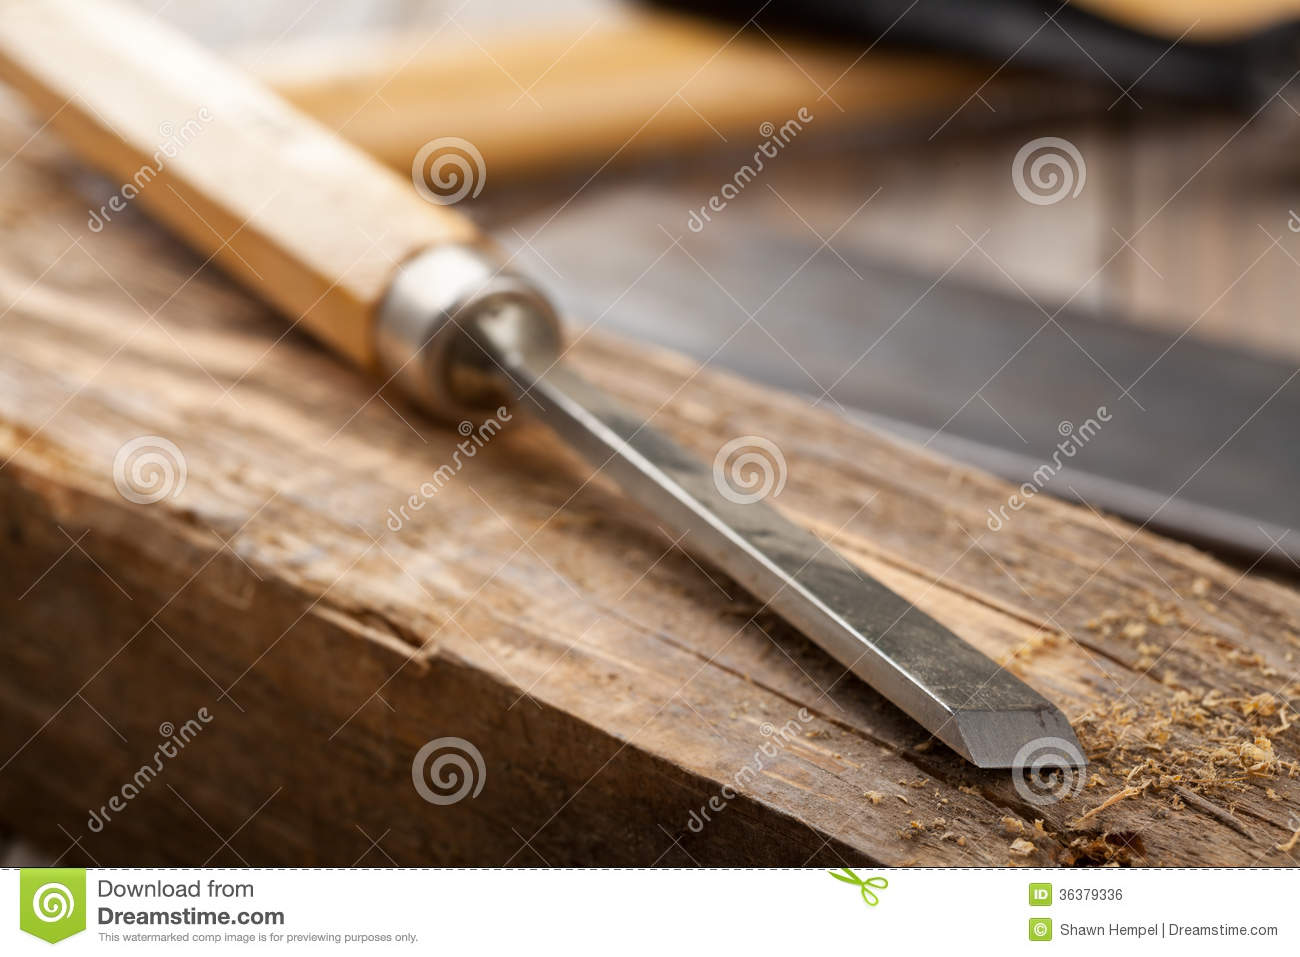 Craftsman's Tools Royalty Free Stock Image - Image: 36379336